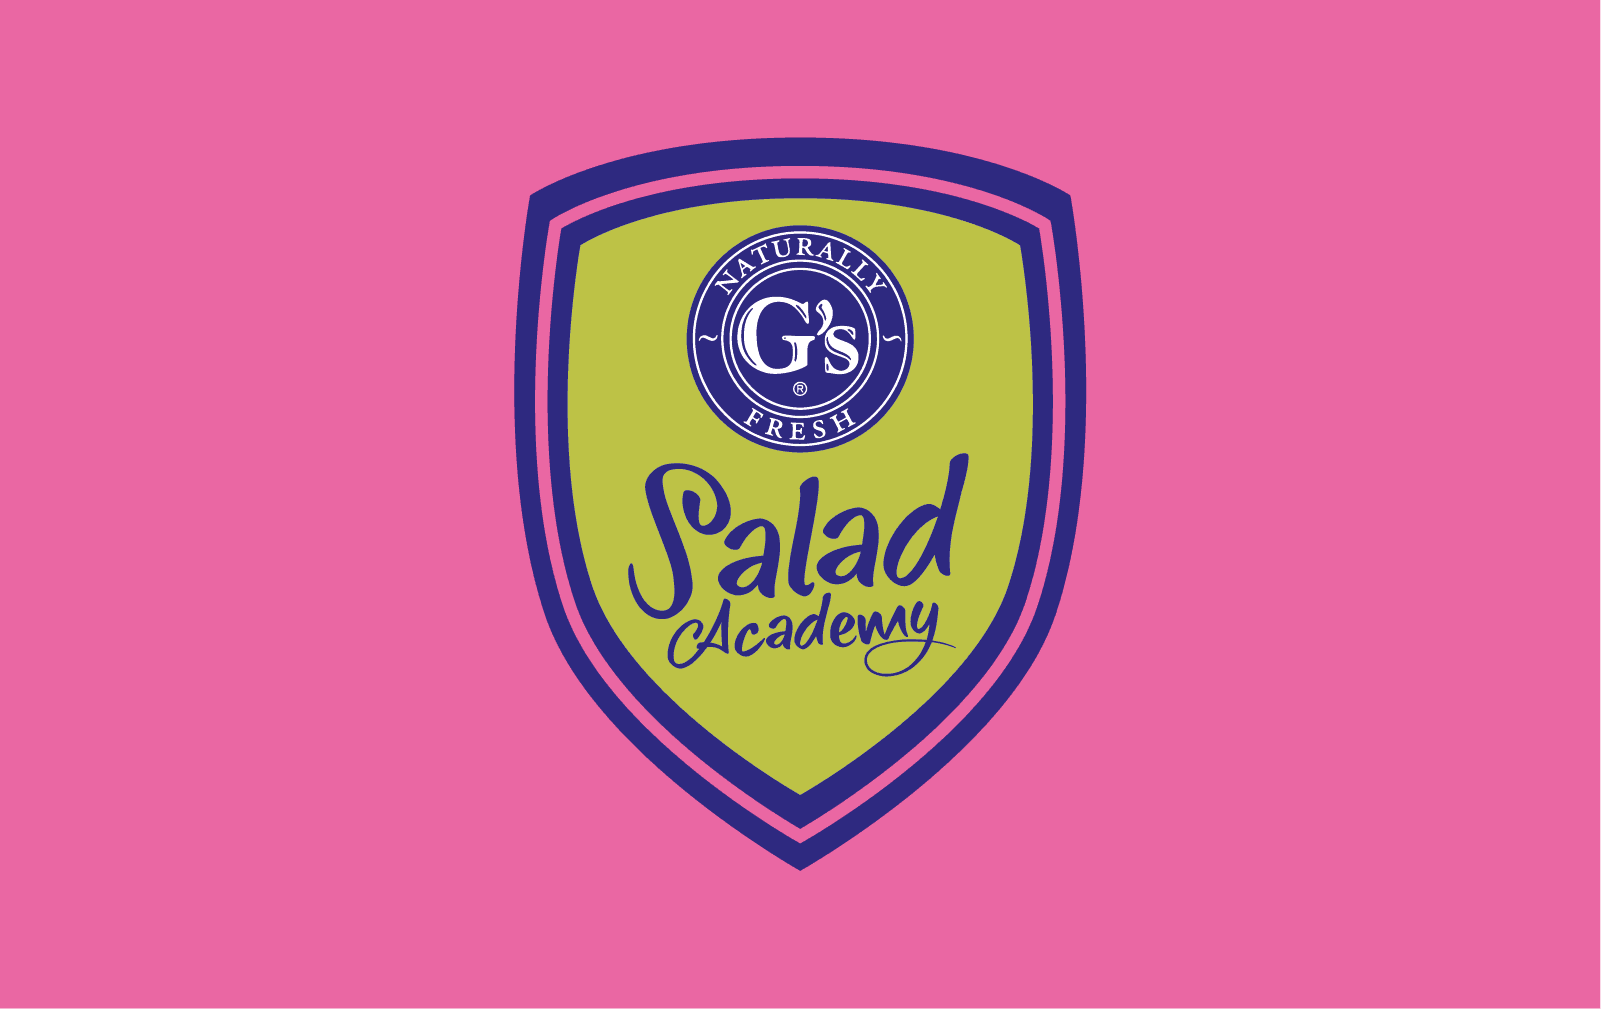 Gs Salad Academy